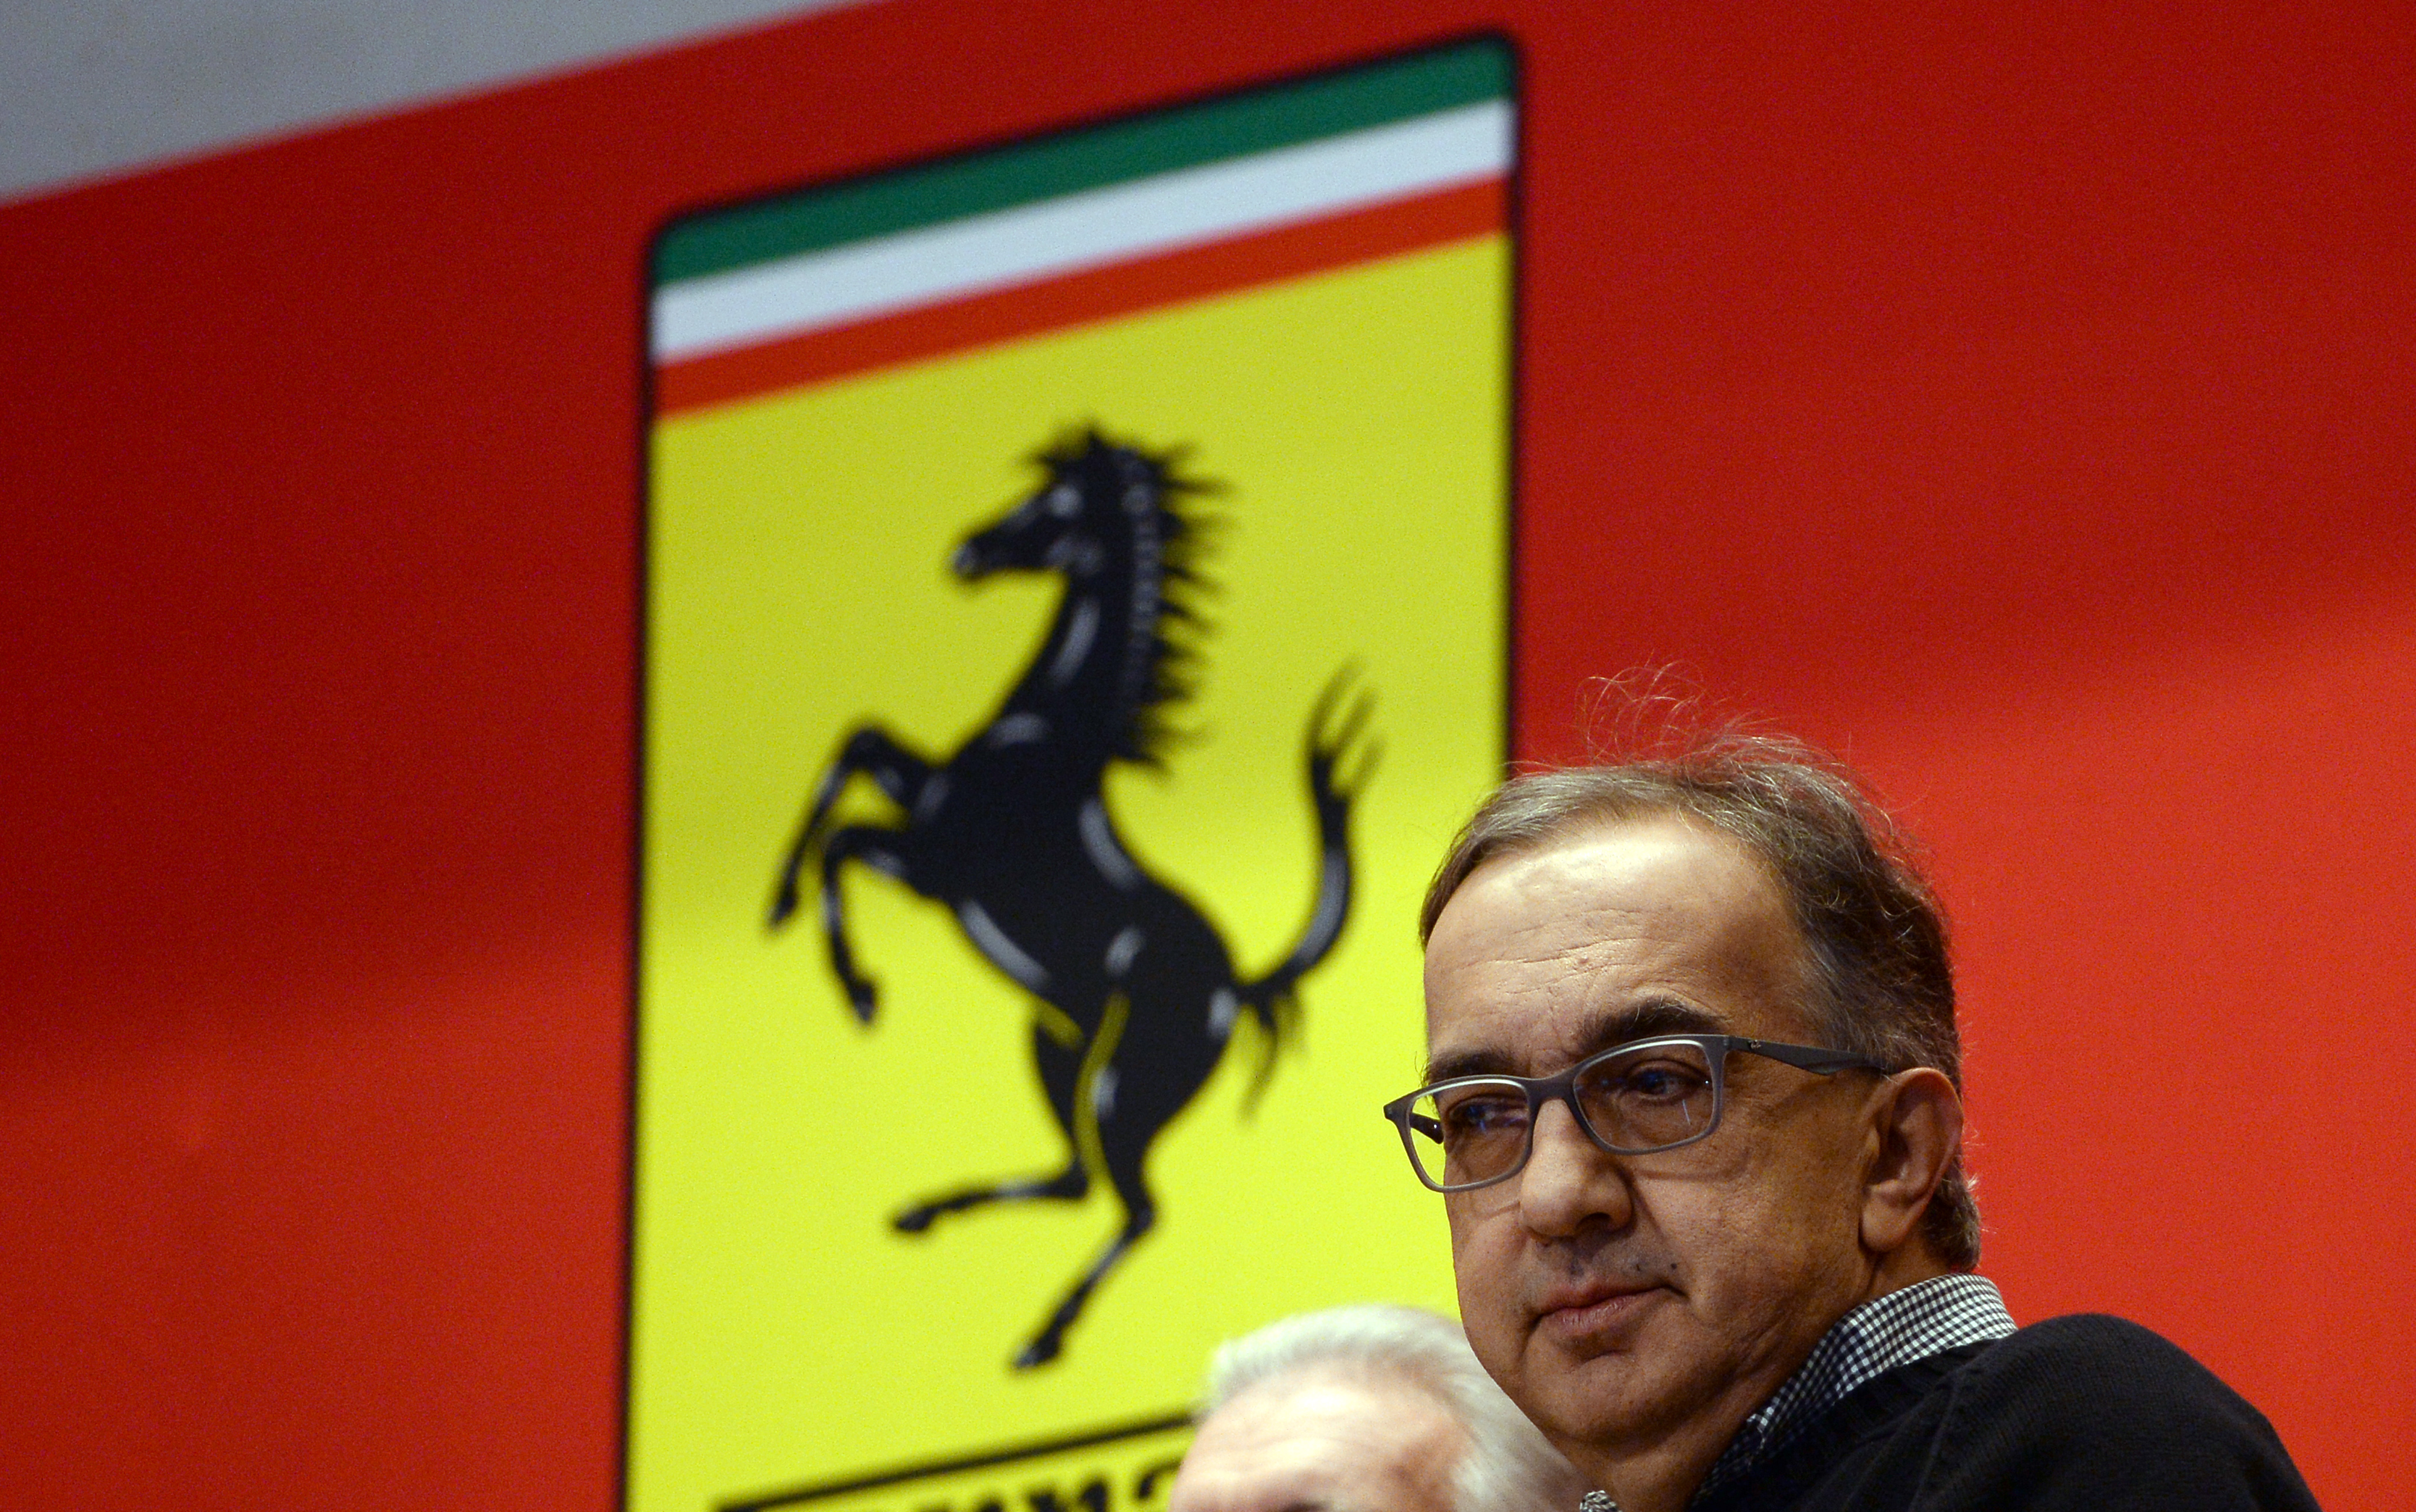 Chief Executive Officer of Fiat Chrysler Automobiles Group Sergio Marchionne waits to ring the opening bell at the New York Stock Exchange (NYSE) as Ferrari starts trading for the first day in New York on October 21, 2015. The Dow clung to a modest gain, but the Nasdaq fell early Wednesday as traders weighed big technology deals, mixed earnings and Ferrari's roaring debut on Wall Street. AFP PHOTO/JEWEL SAMAD / AFP PHOTO / JEWEL SAMAD